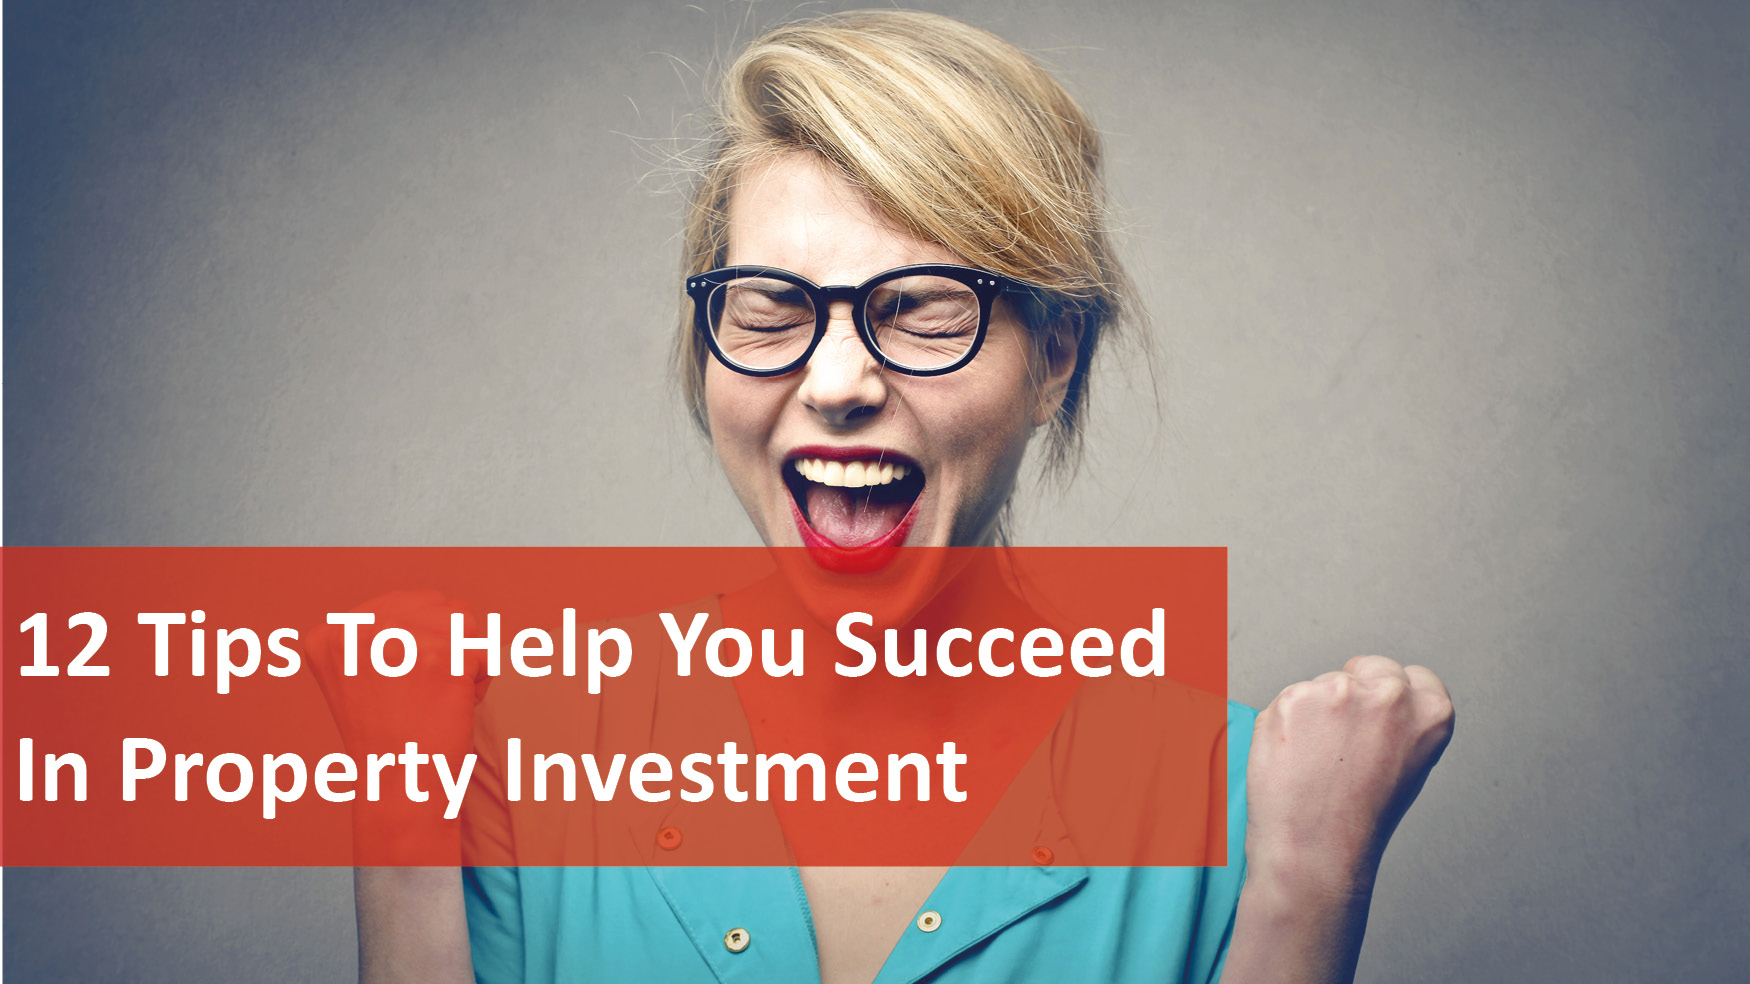 We Love Rentals 12 Tips to Succeed in Property Investment